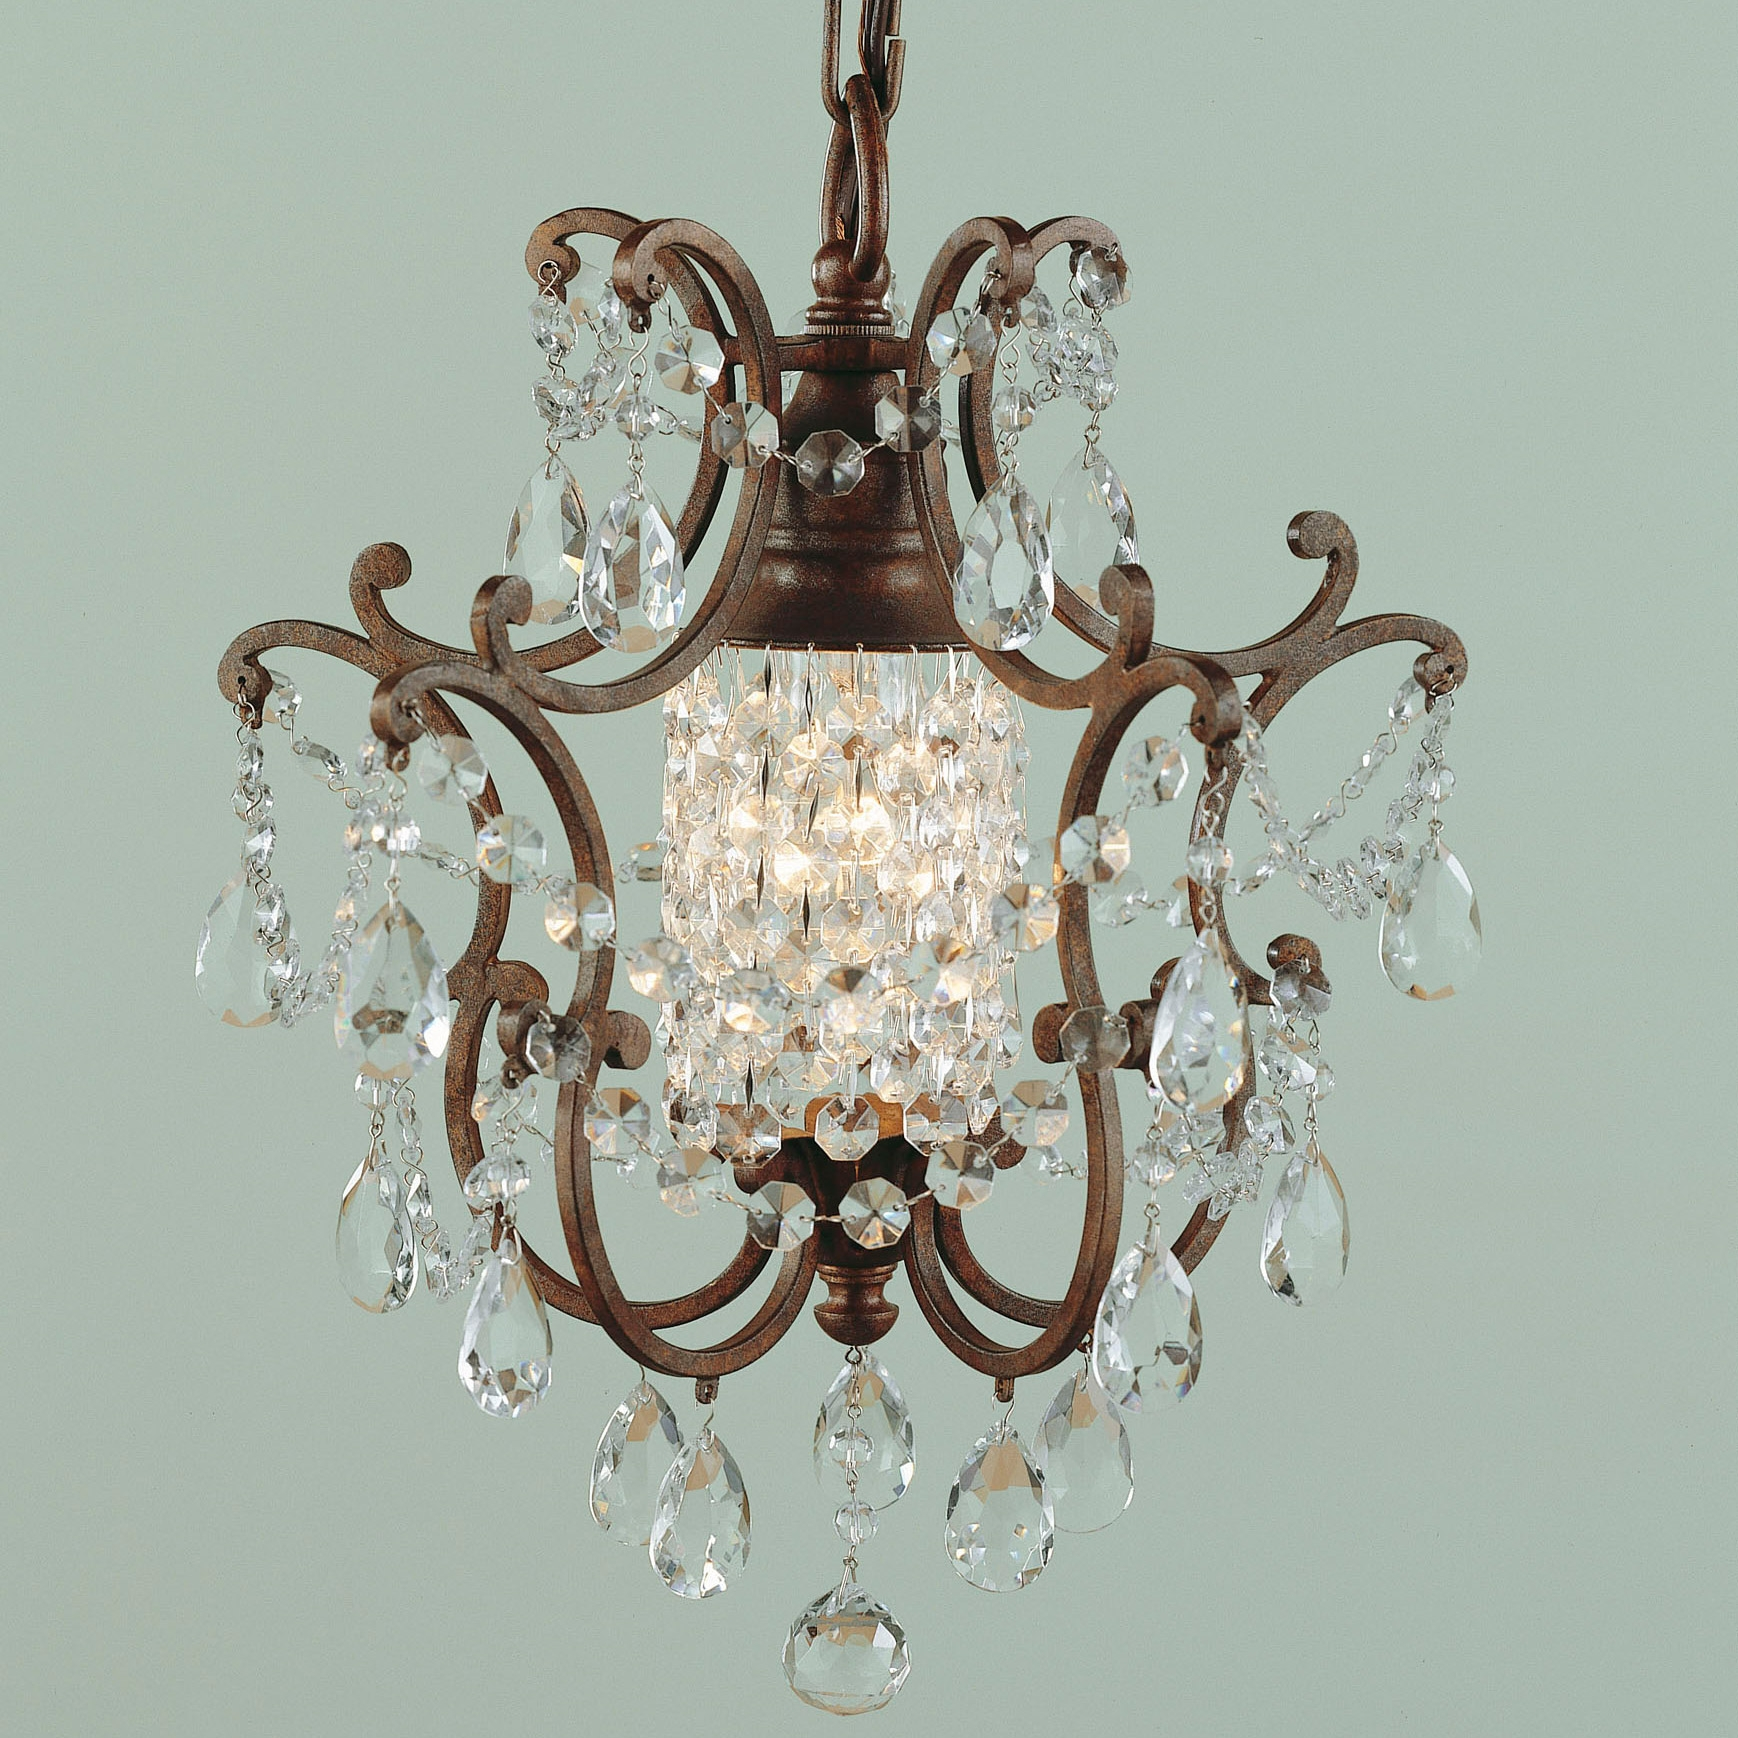 Mini Crystal Chandelier Home Design Ideas Inside Mini Crystal Chandeliers (View 19 of 25)